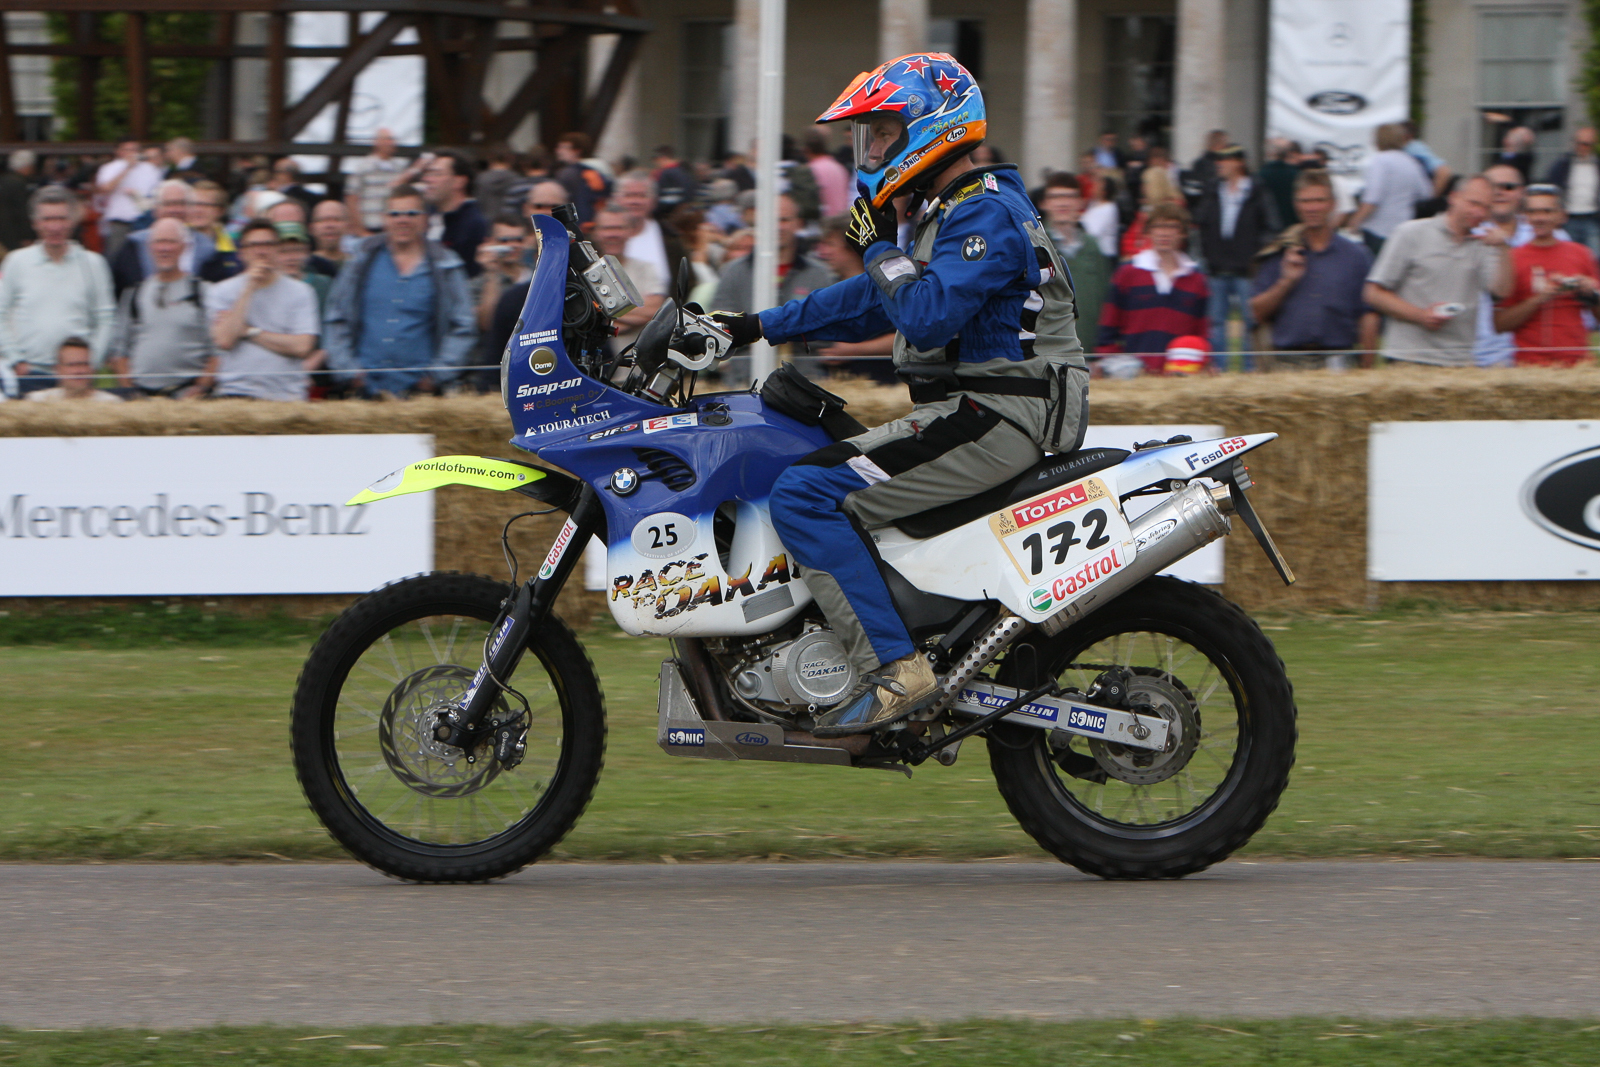 20080711 - Goodwood Festival of Speed -080711 -008